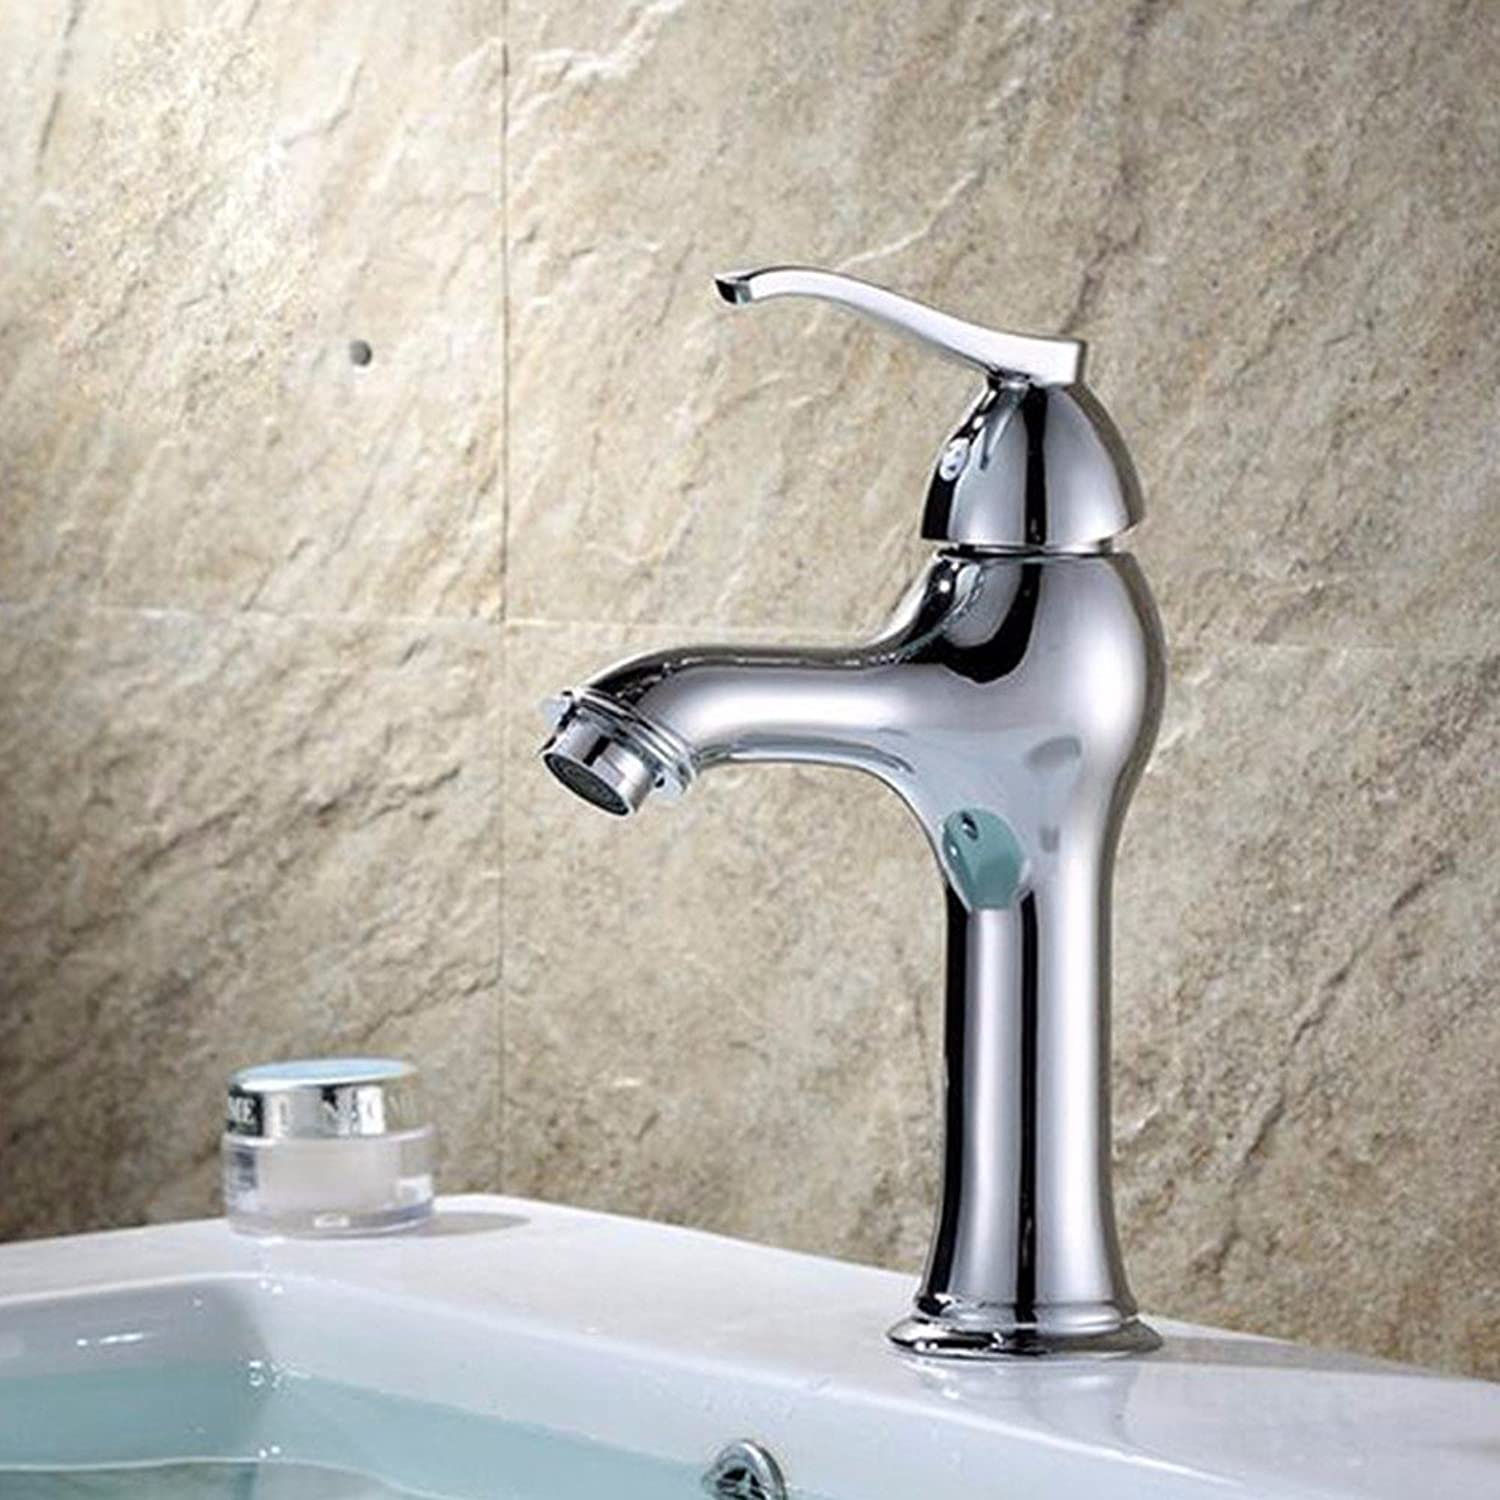 LHbox Basin Mixer Tap Bathroom Sink Faucet Hot and cold single hole basin mixer basin mixer basin faucet zinc alloy redary Mixer